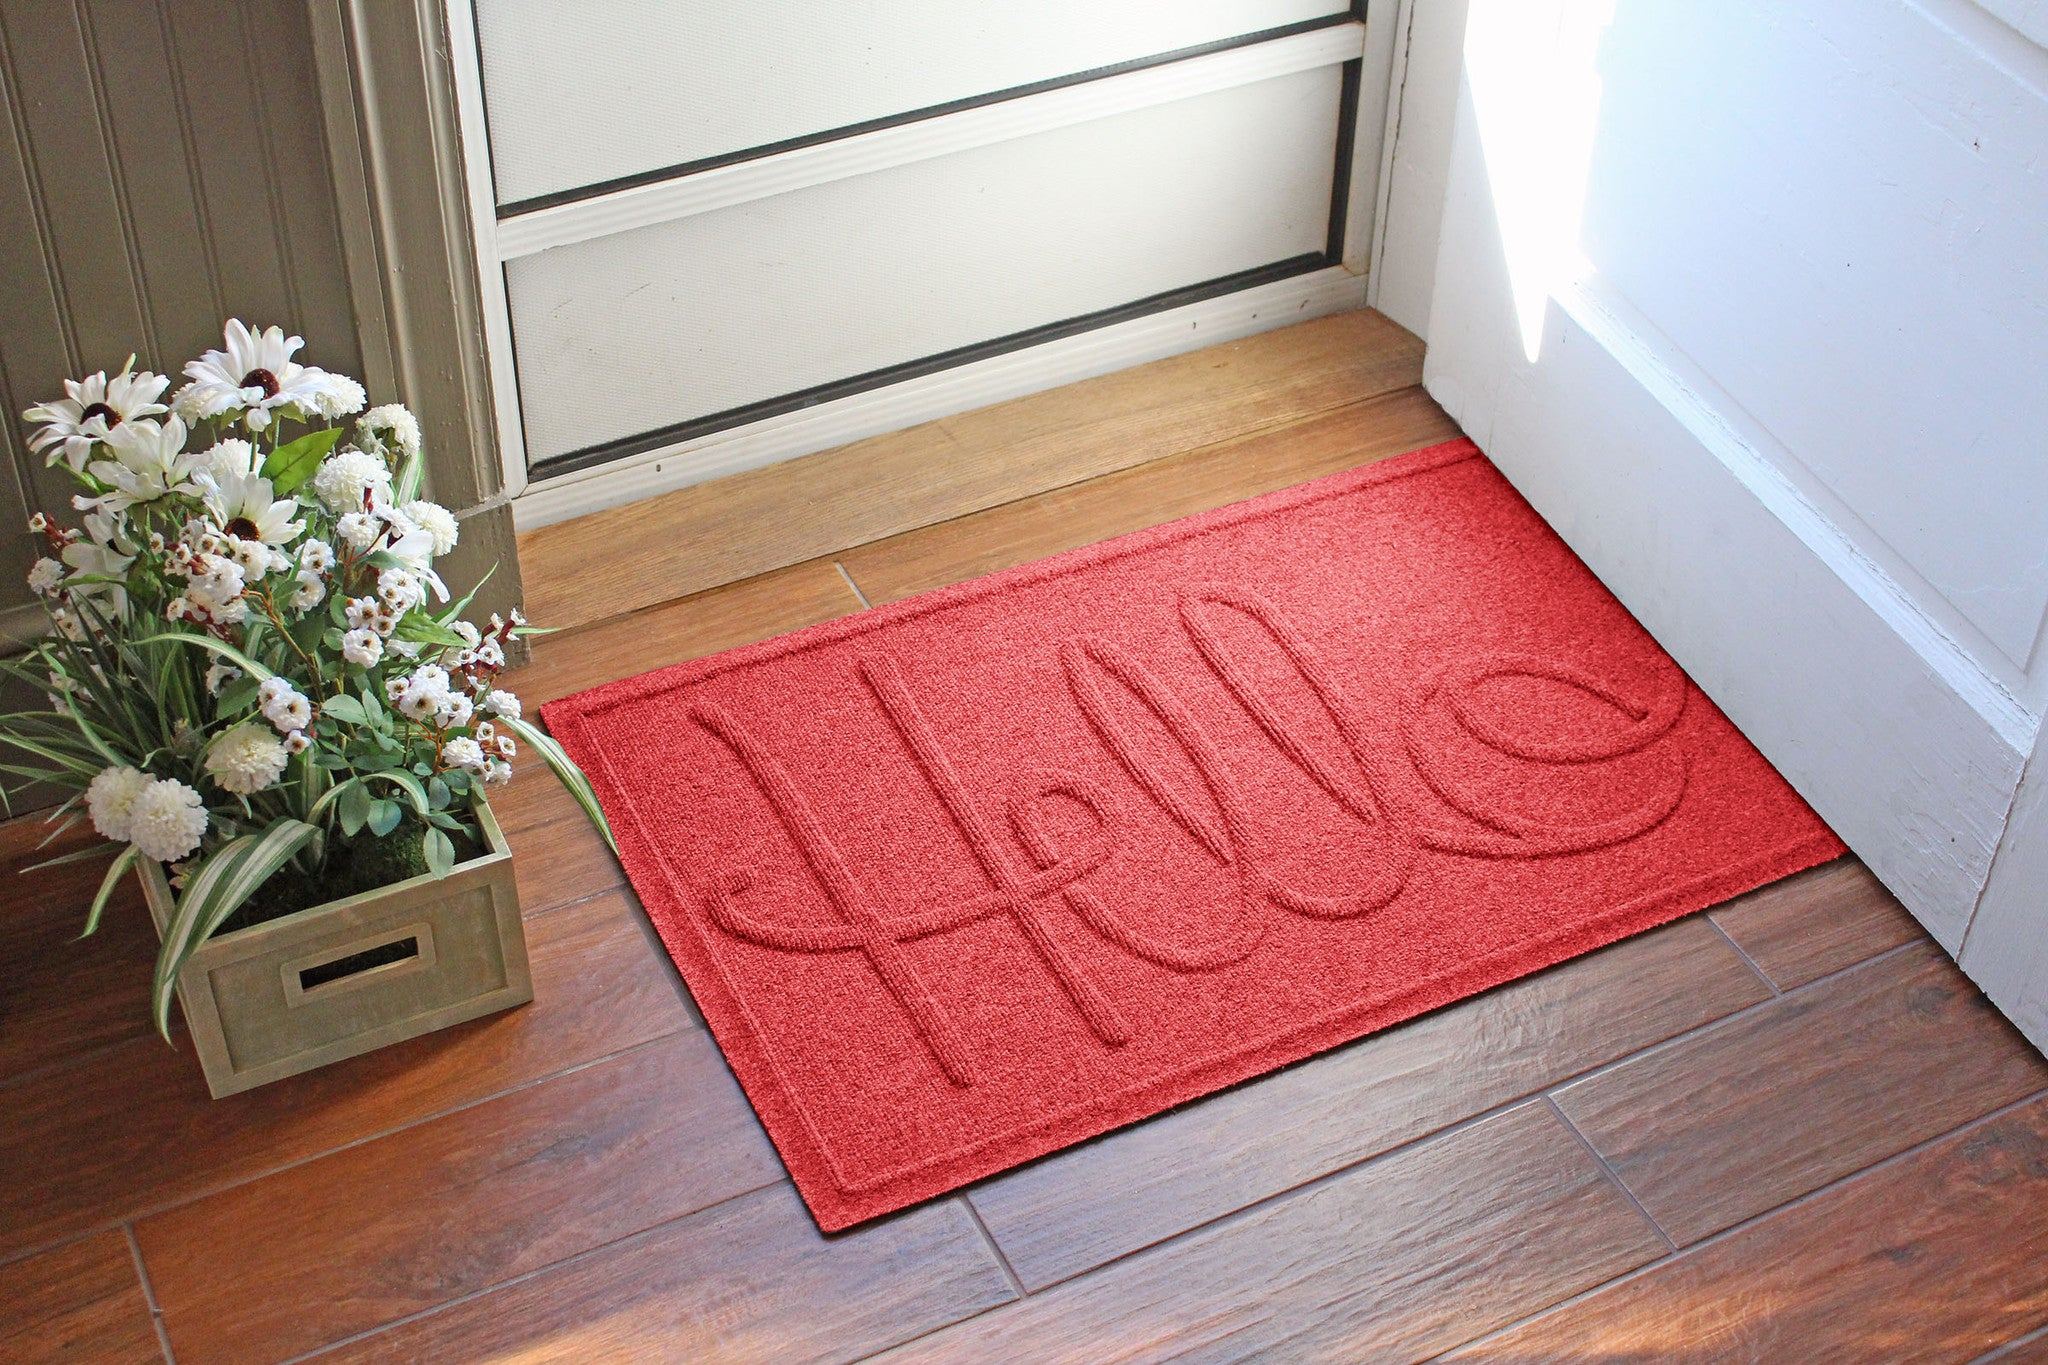 Wholesale- (2 units) Waterhog Hello Doormat 2'x3'